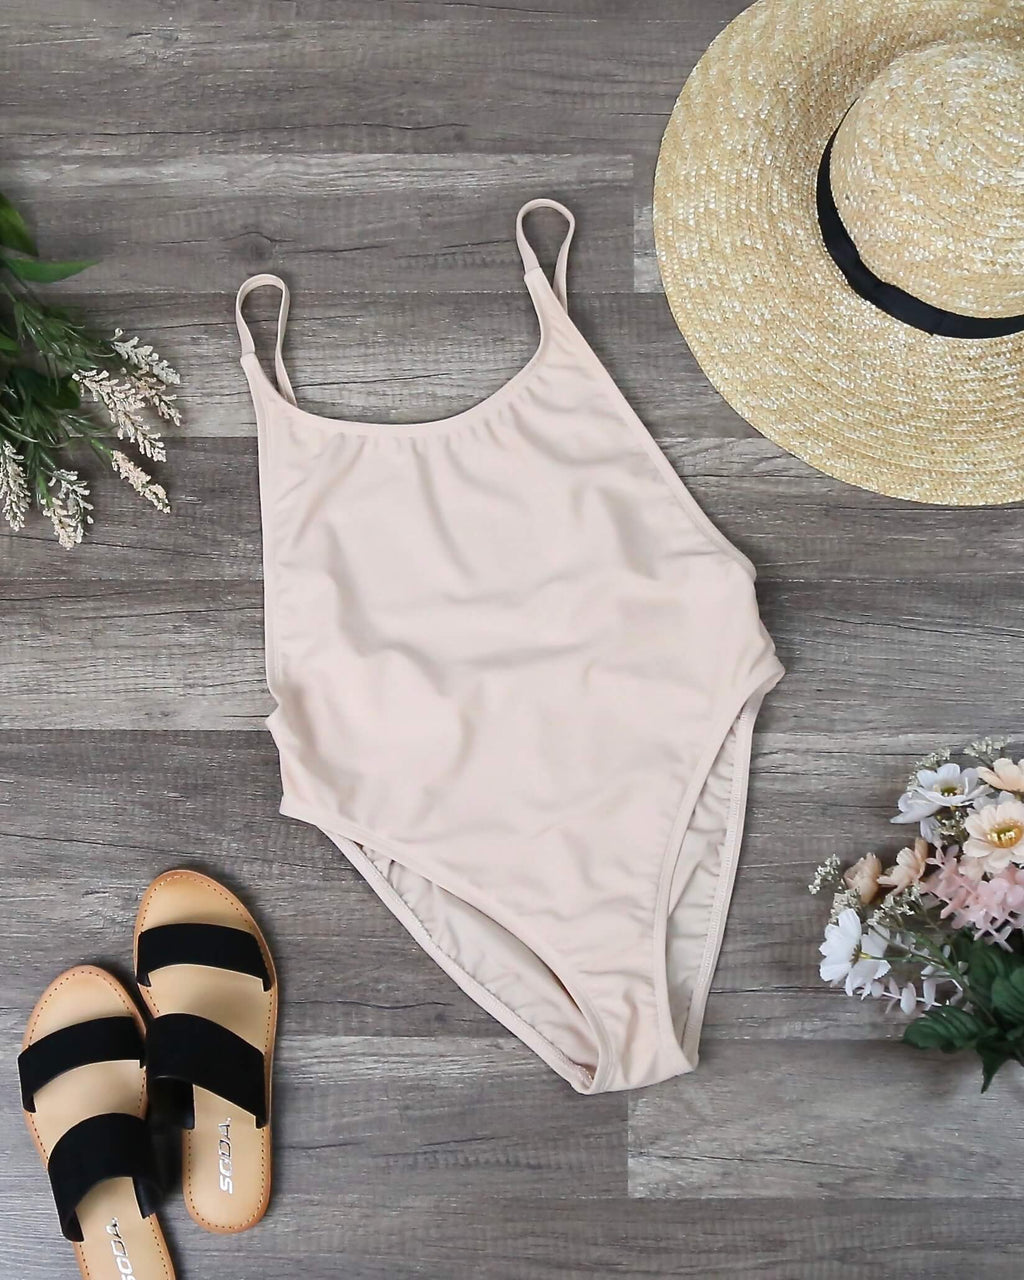 Final Sale - Dippin' Daisy's - Take a Dip High Cut One Piece Swimsuit in Taupe